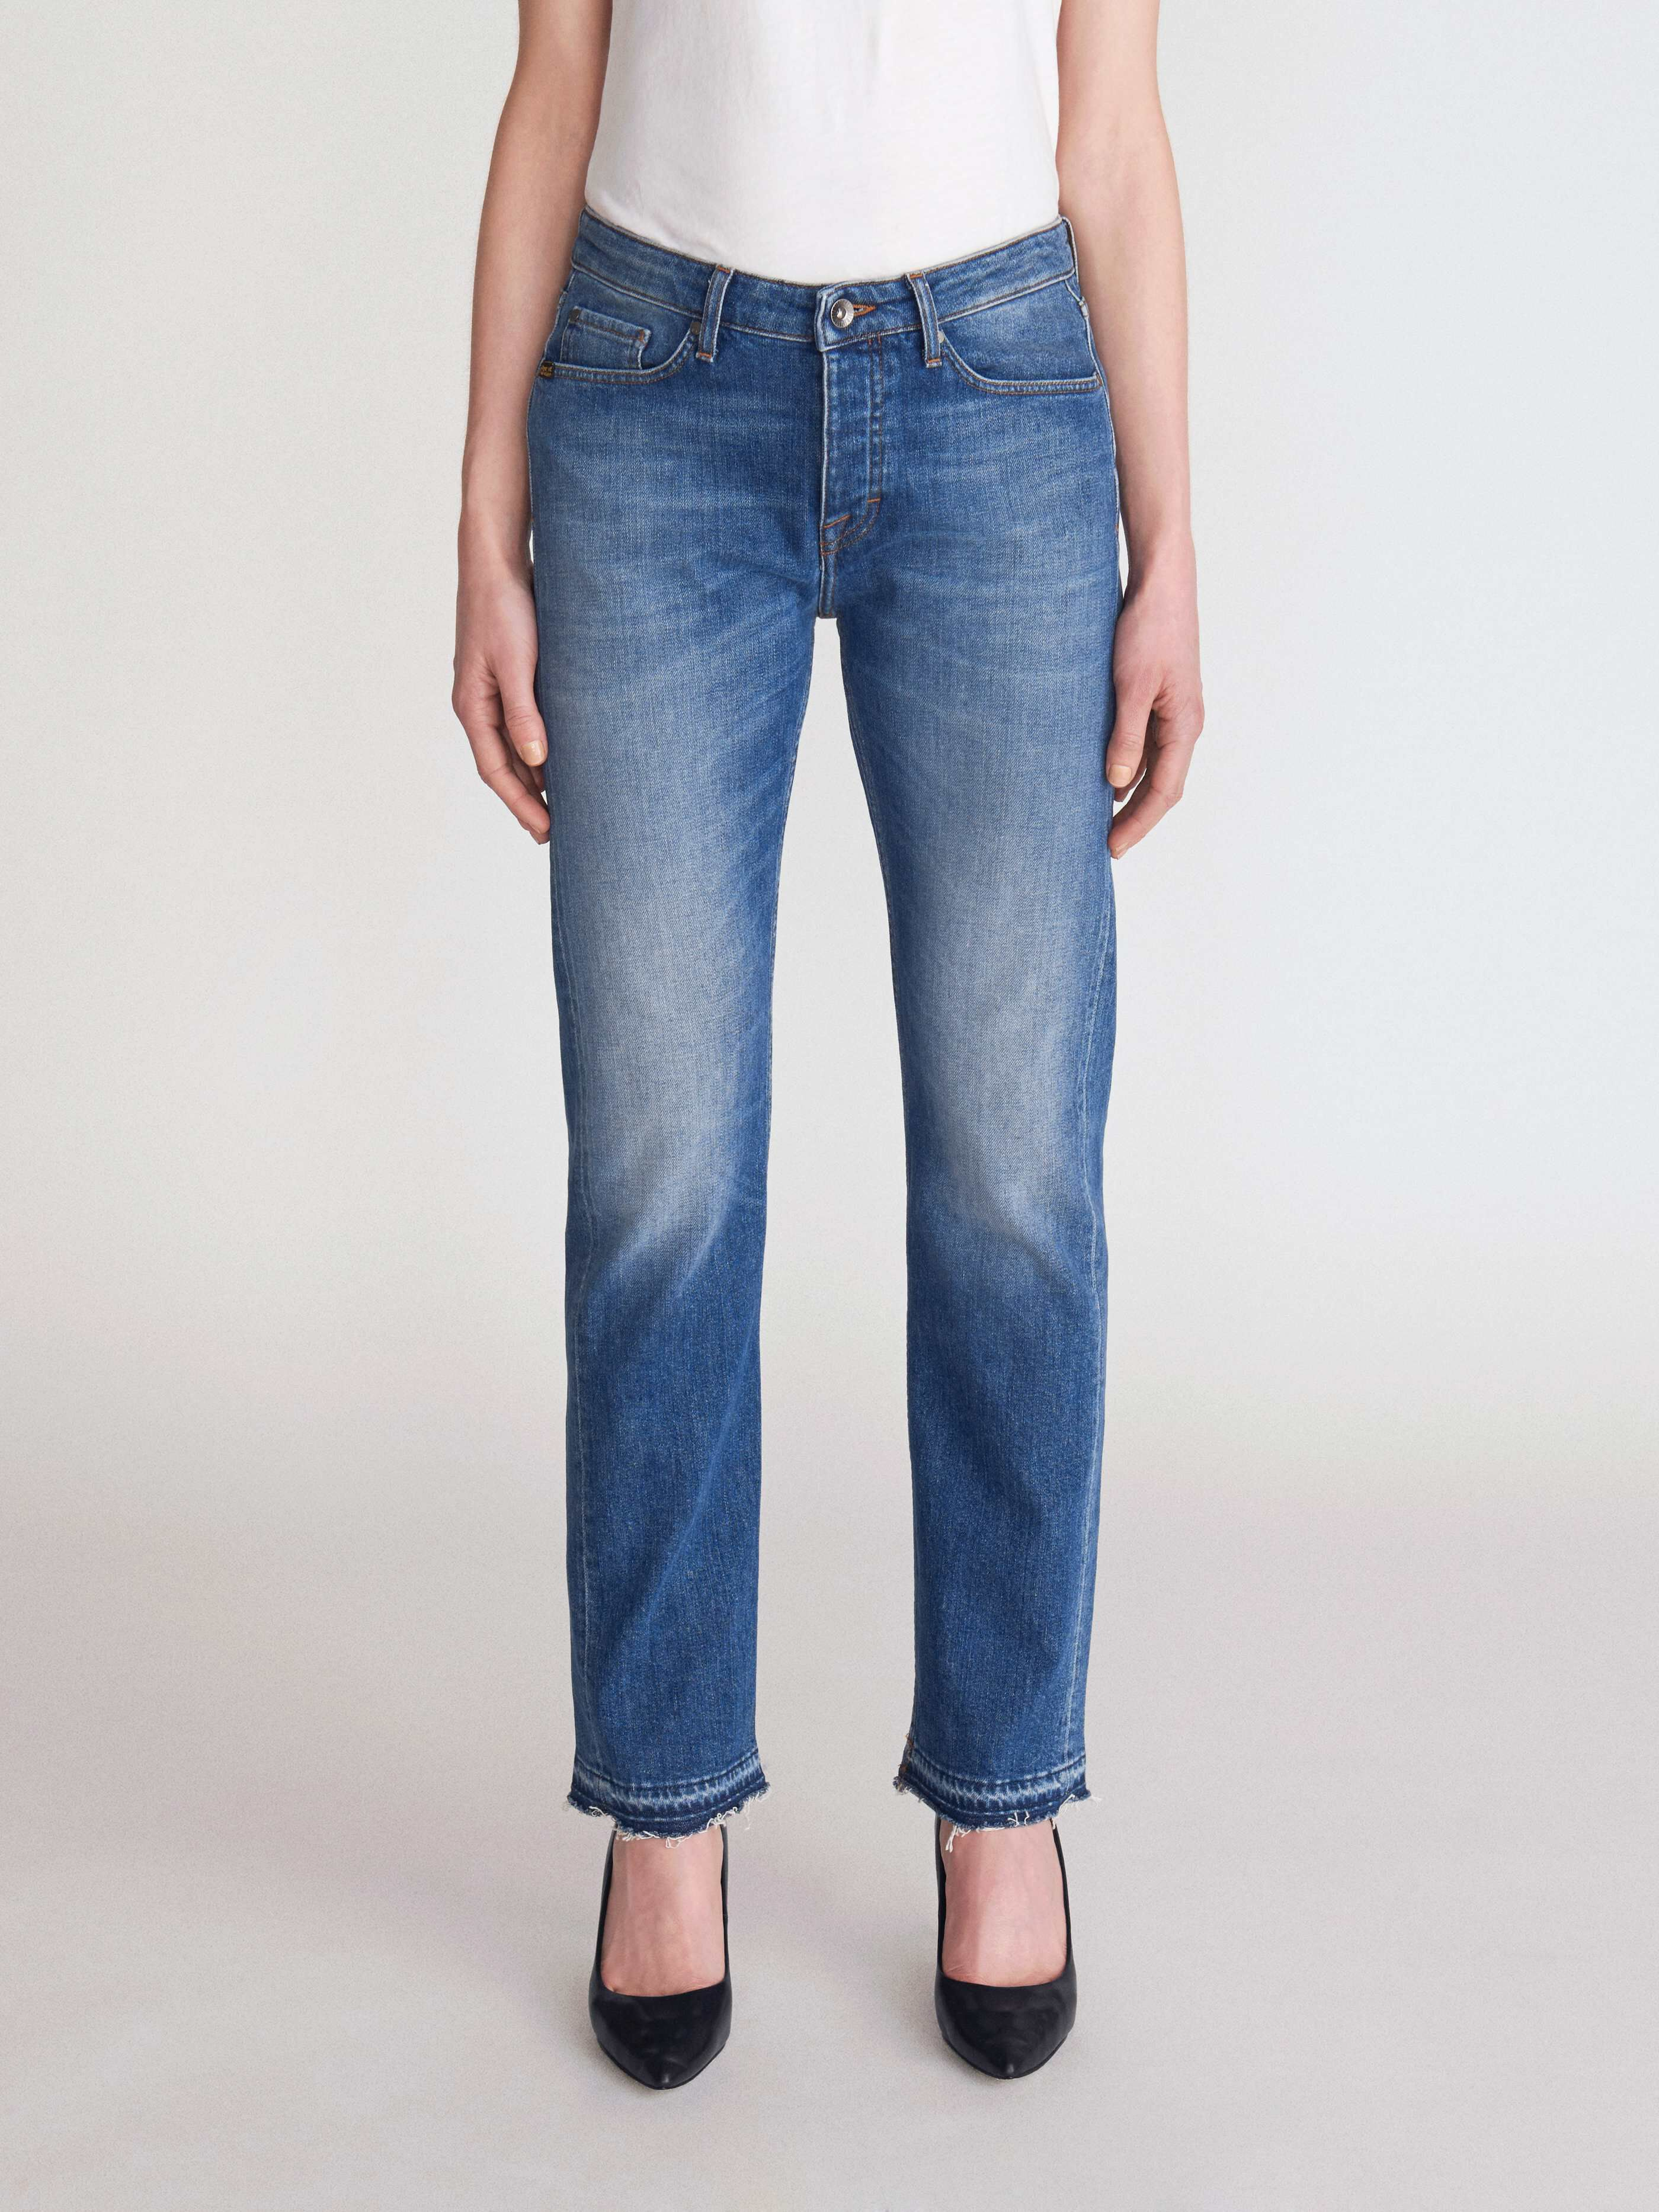 Women's Jeans At Designer Of Tiger Buy Sweden 8xOqAx45